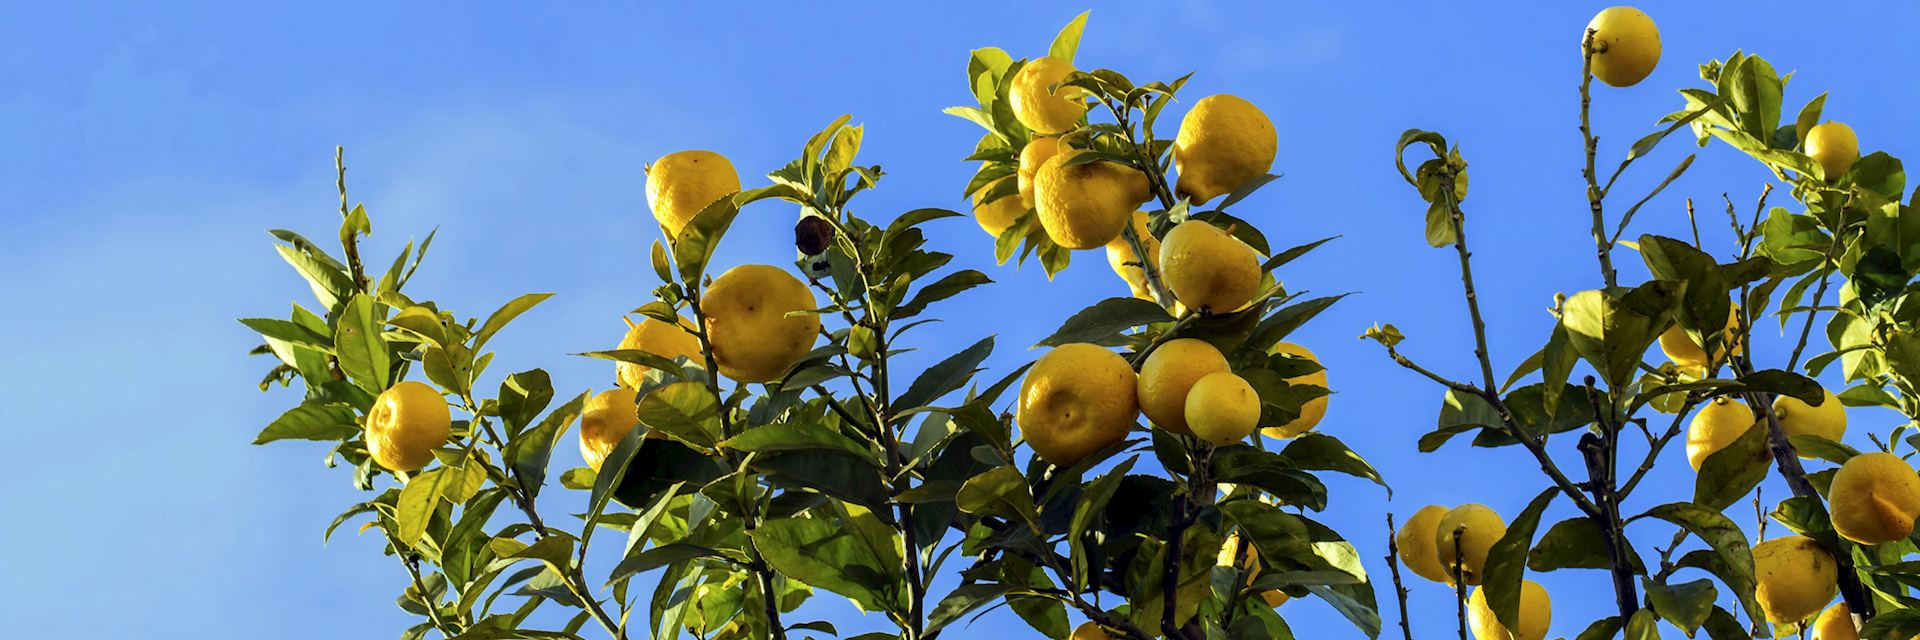 Lemon trees, Sorrento